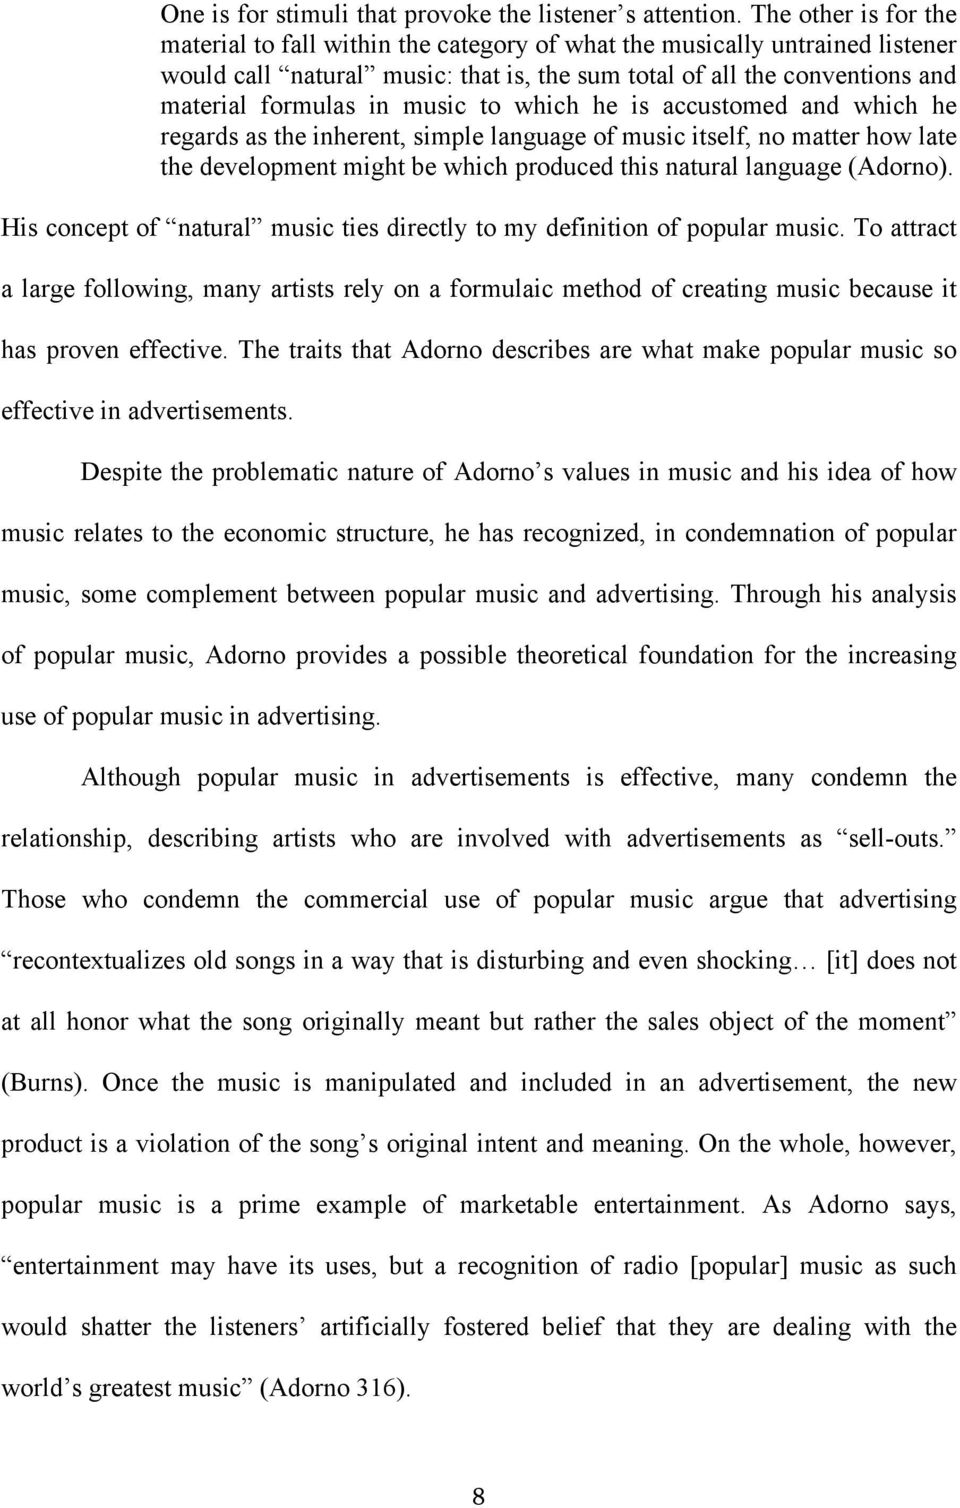 music to which he is accustomed and which he regards as the inherent, simple language of music itself, no matter how late the development might be which produced this natural language (Adorno).